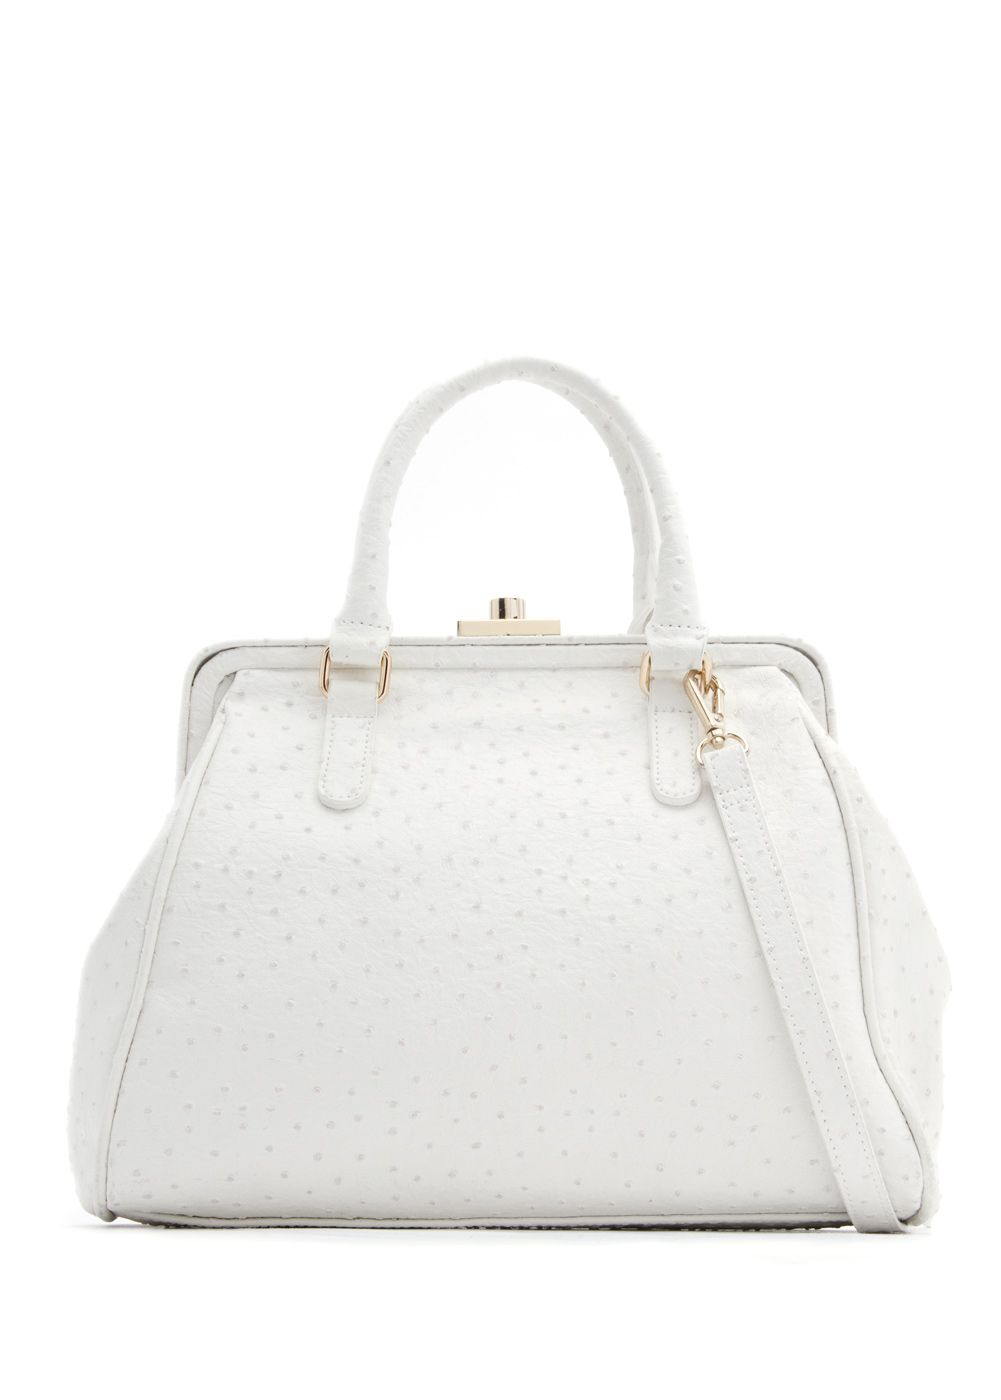 White ostrich leather effect tote